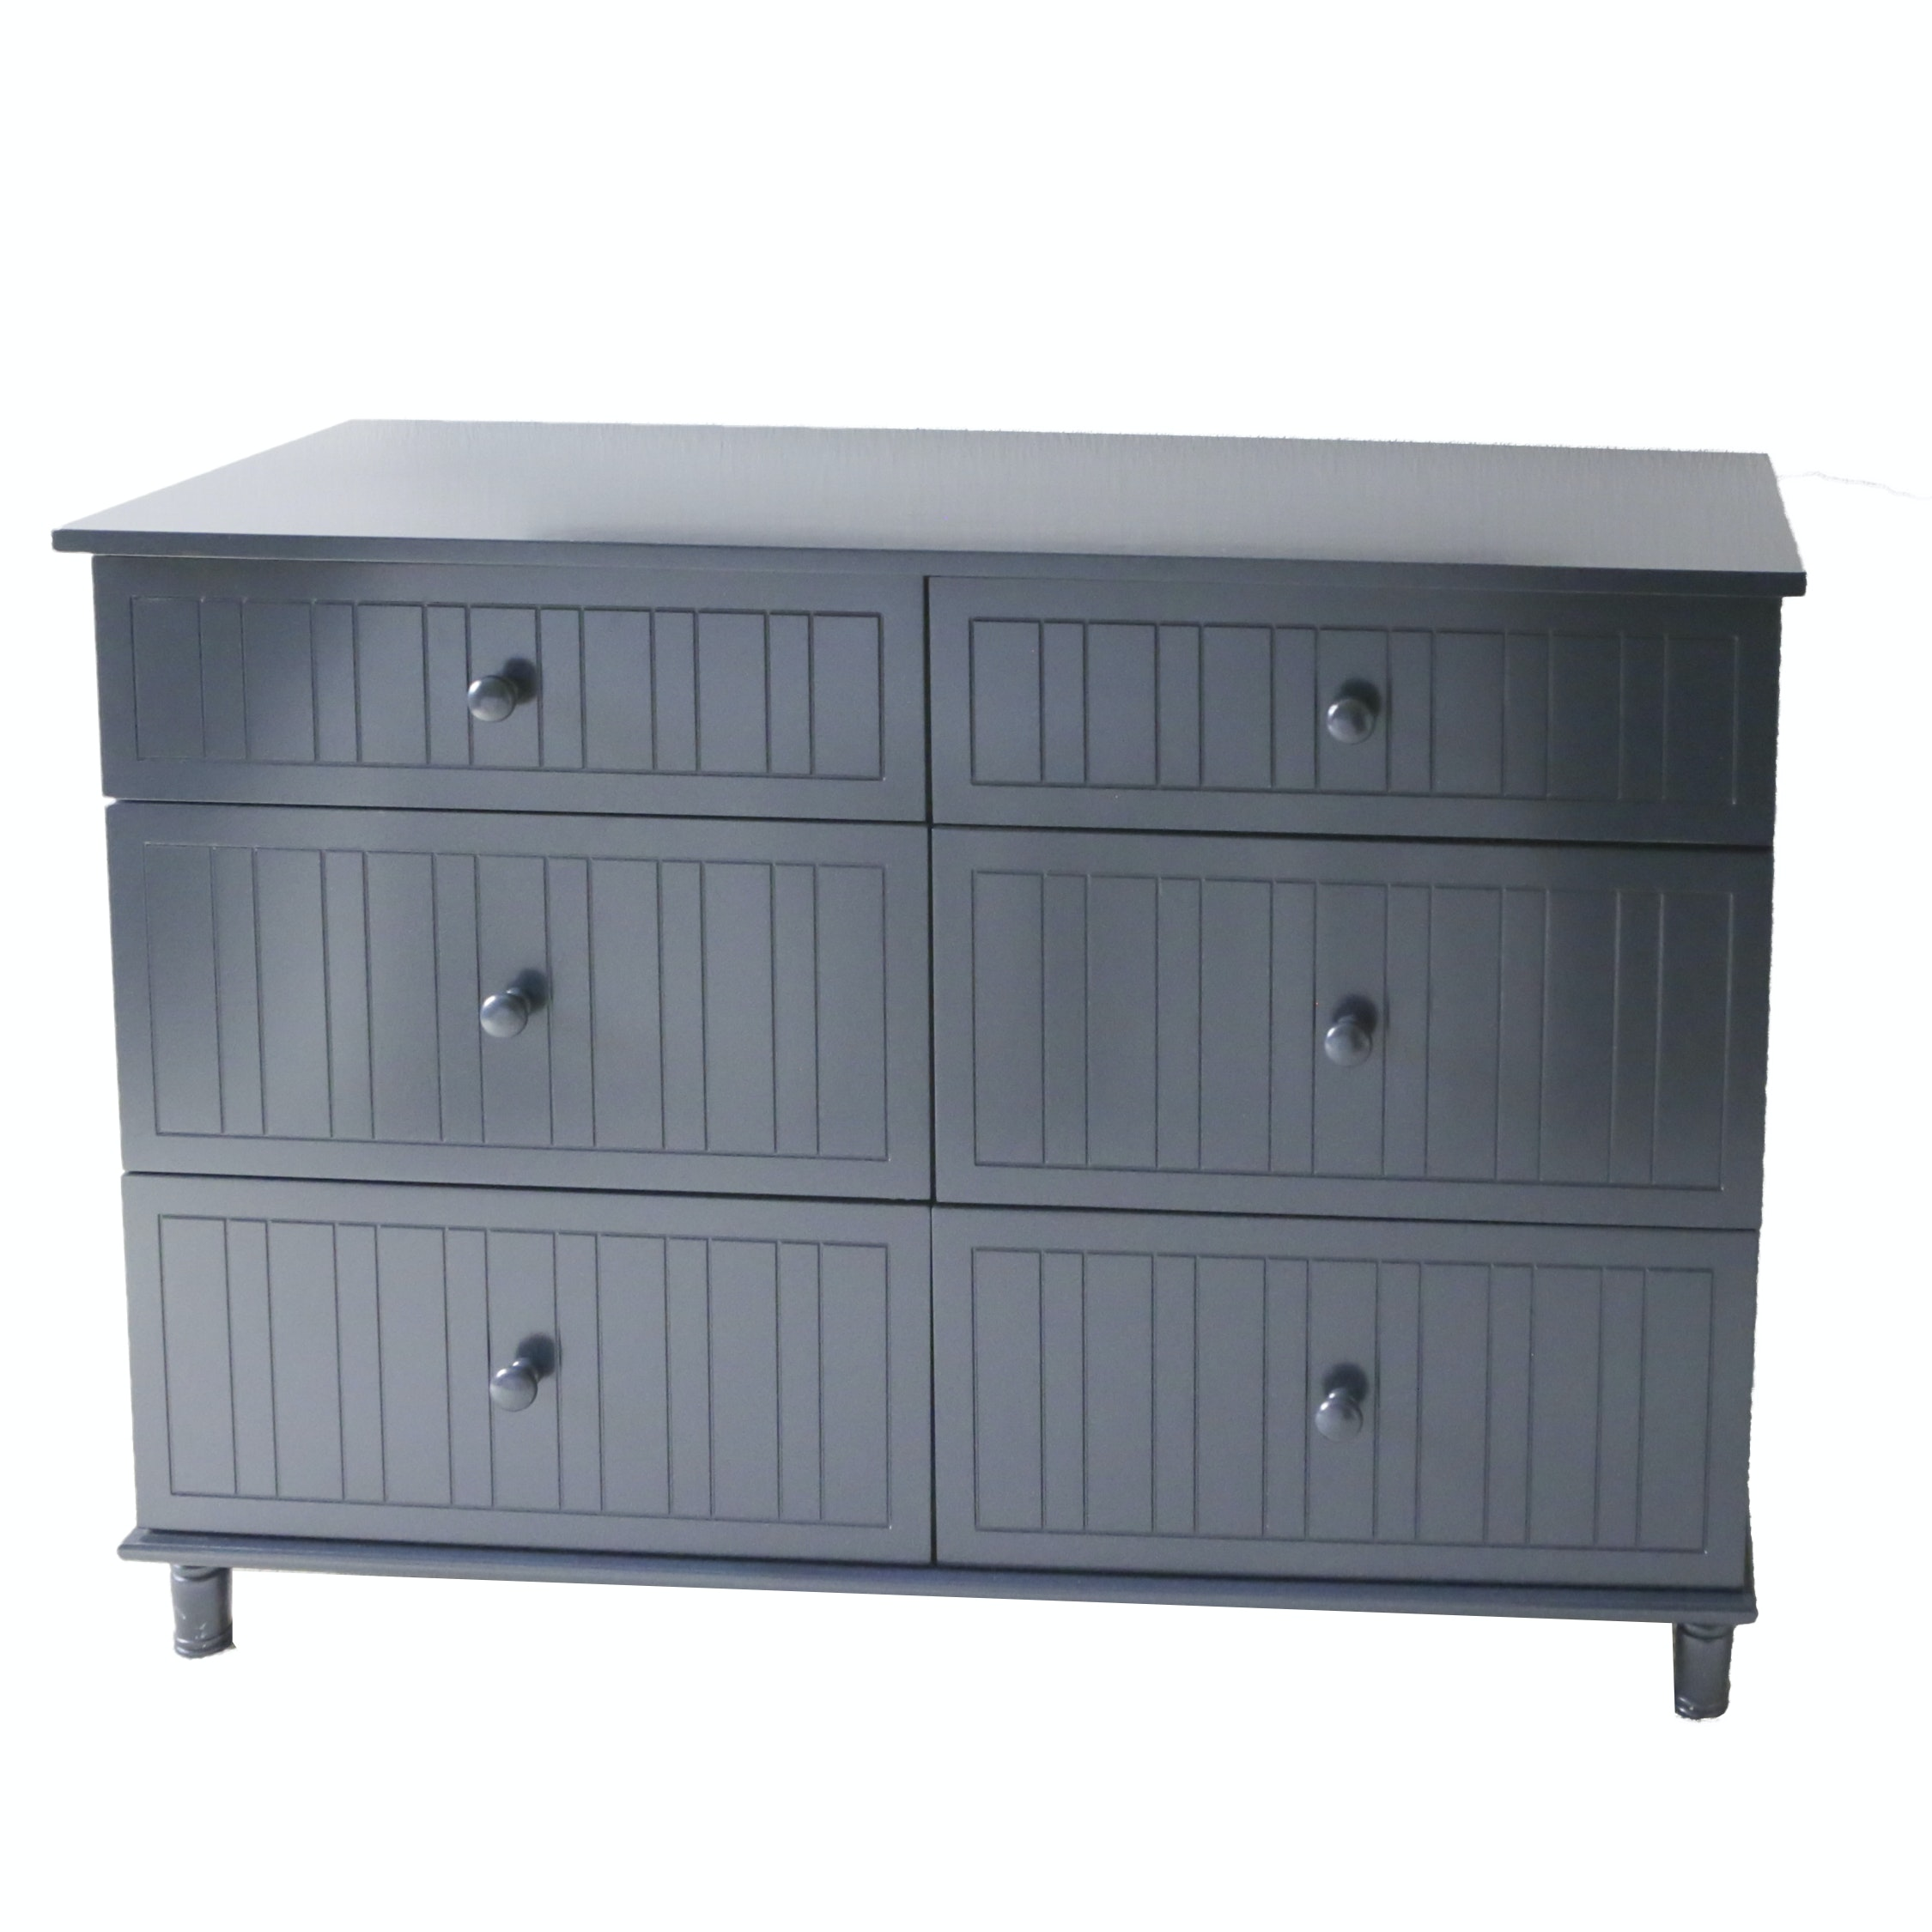 Contemporary Black Painted Chest of Drawers